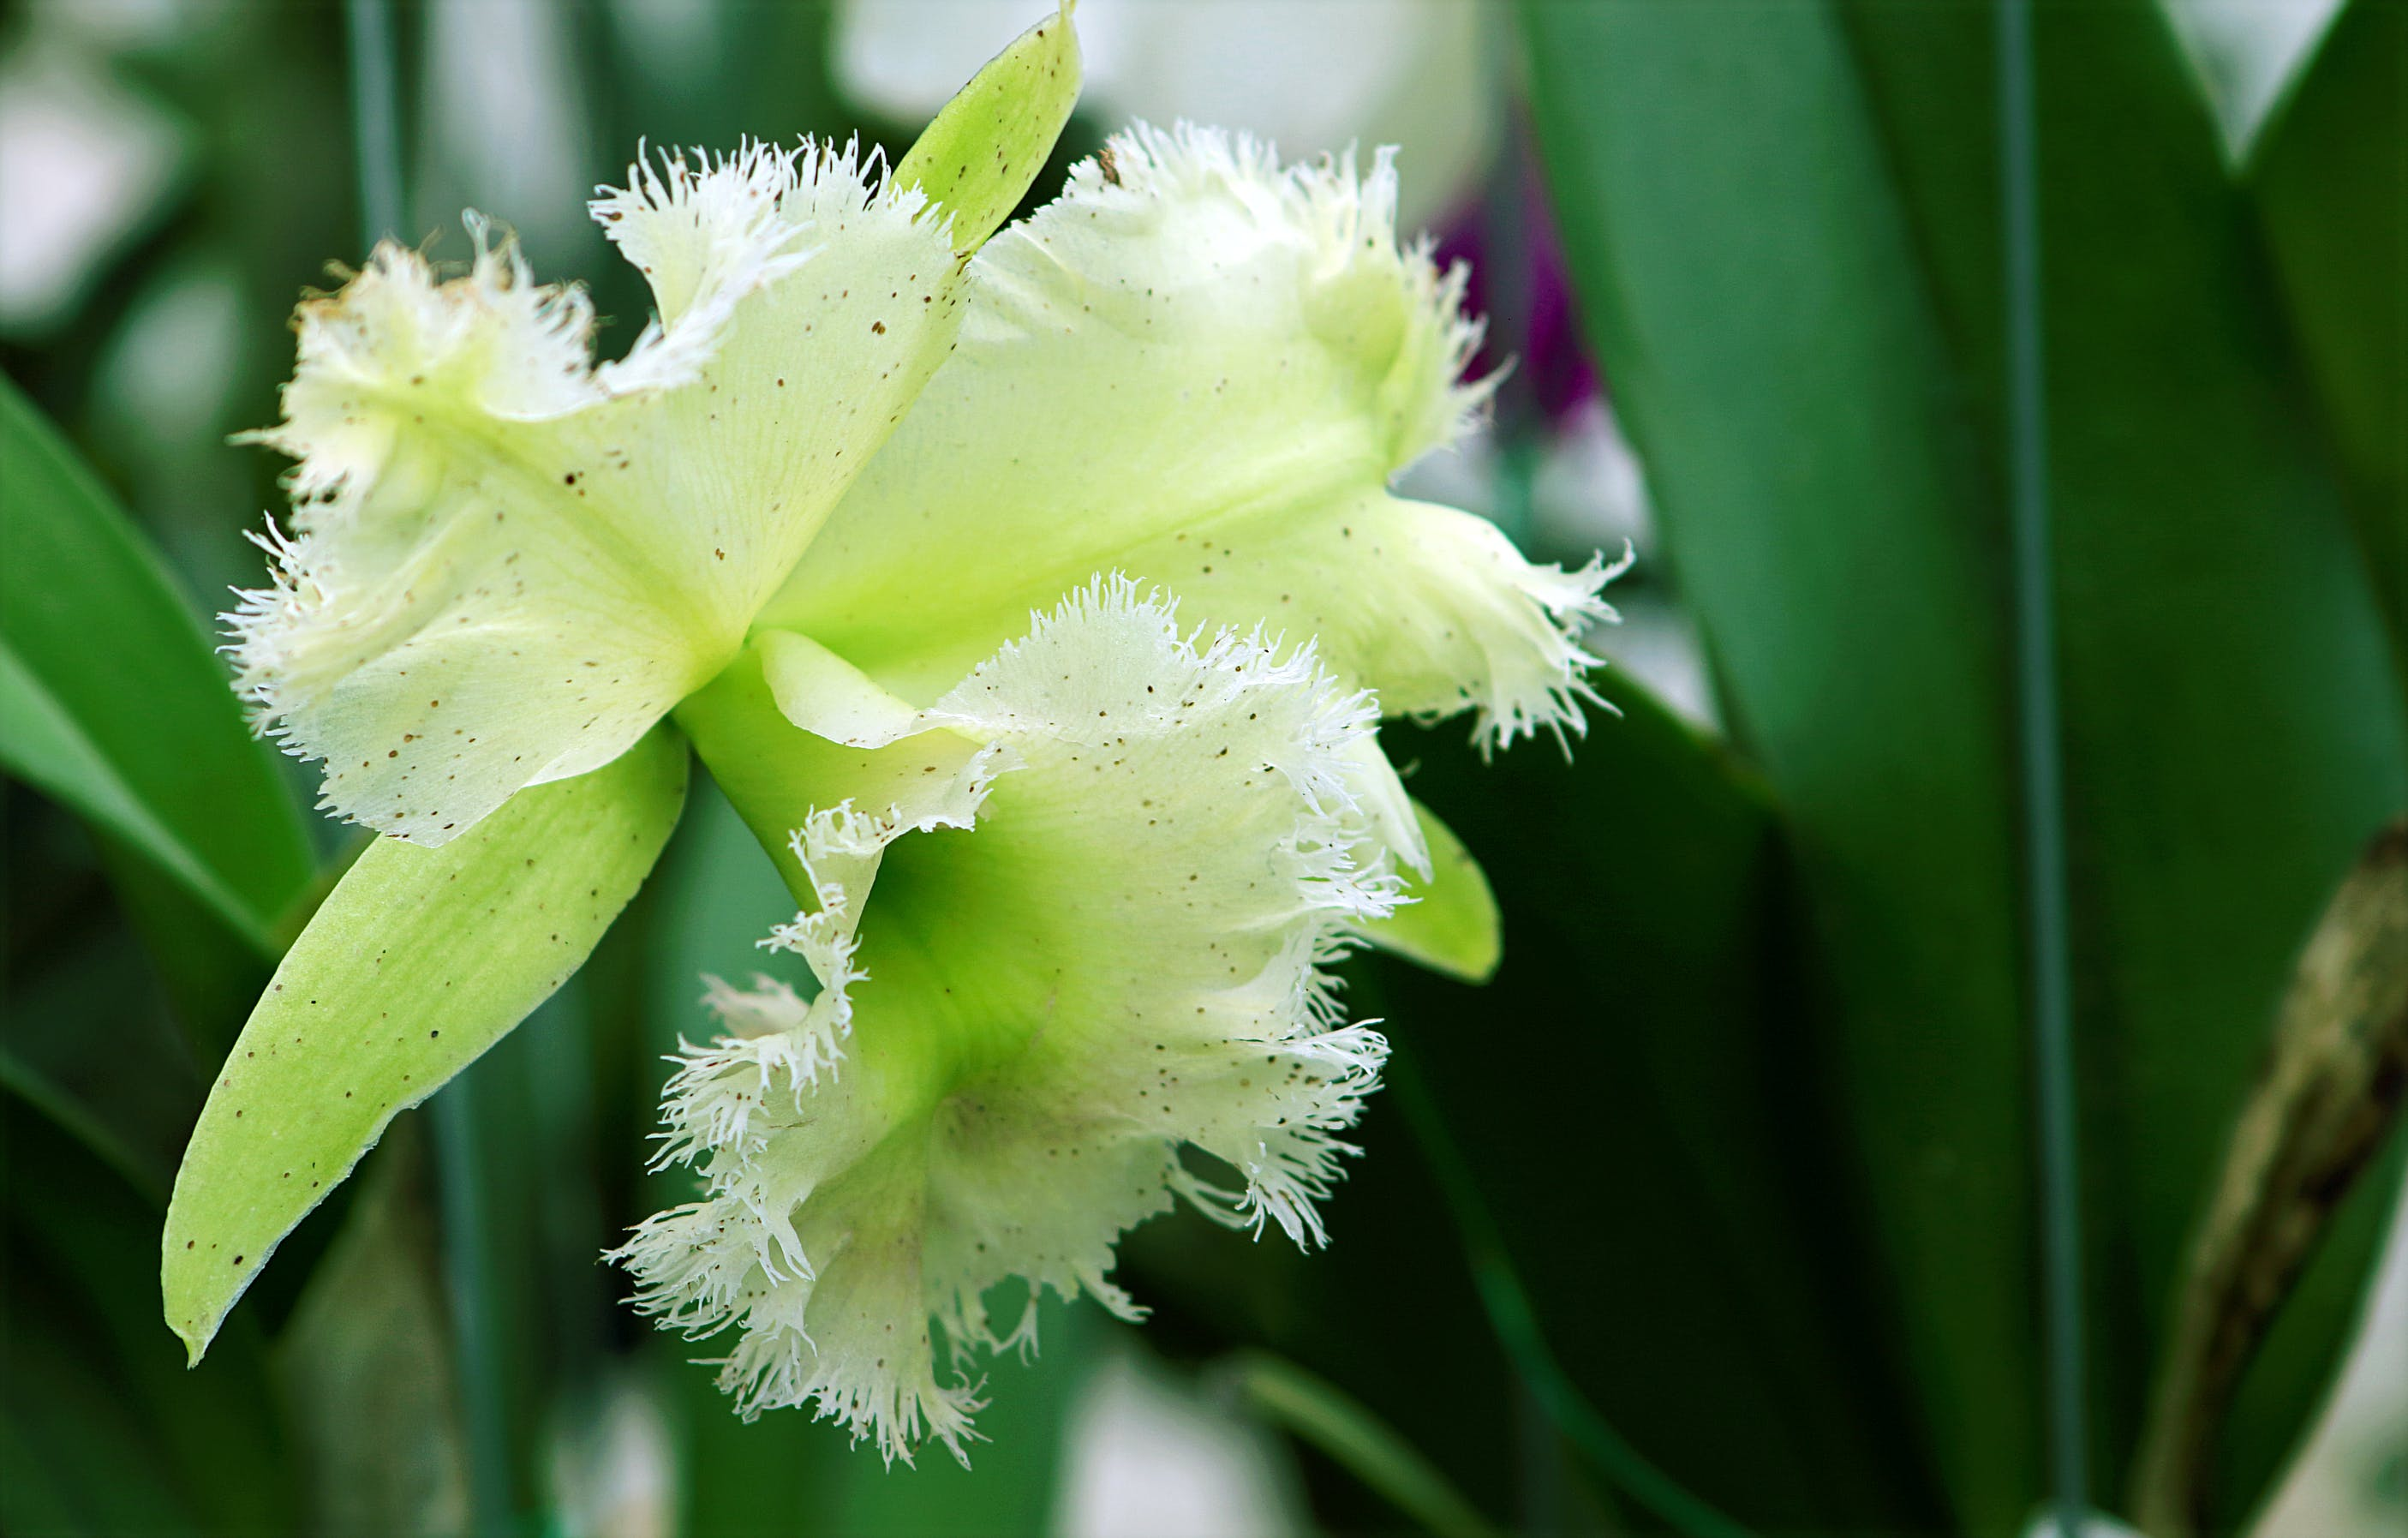 Close Photography of Green Orchid Flower